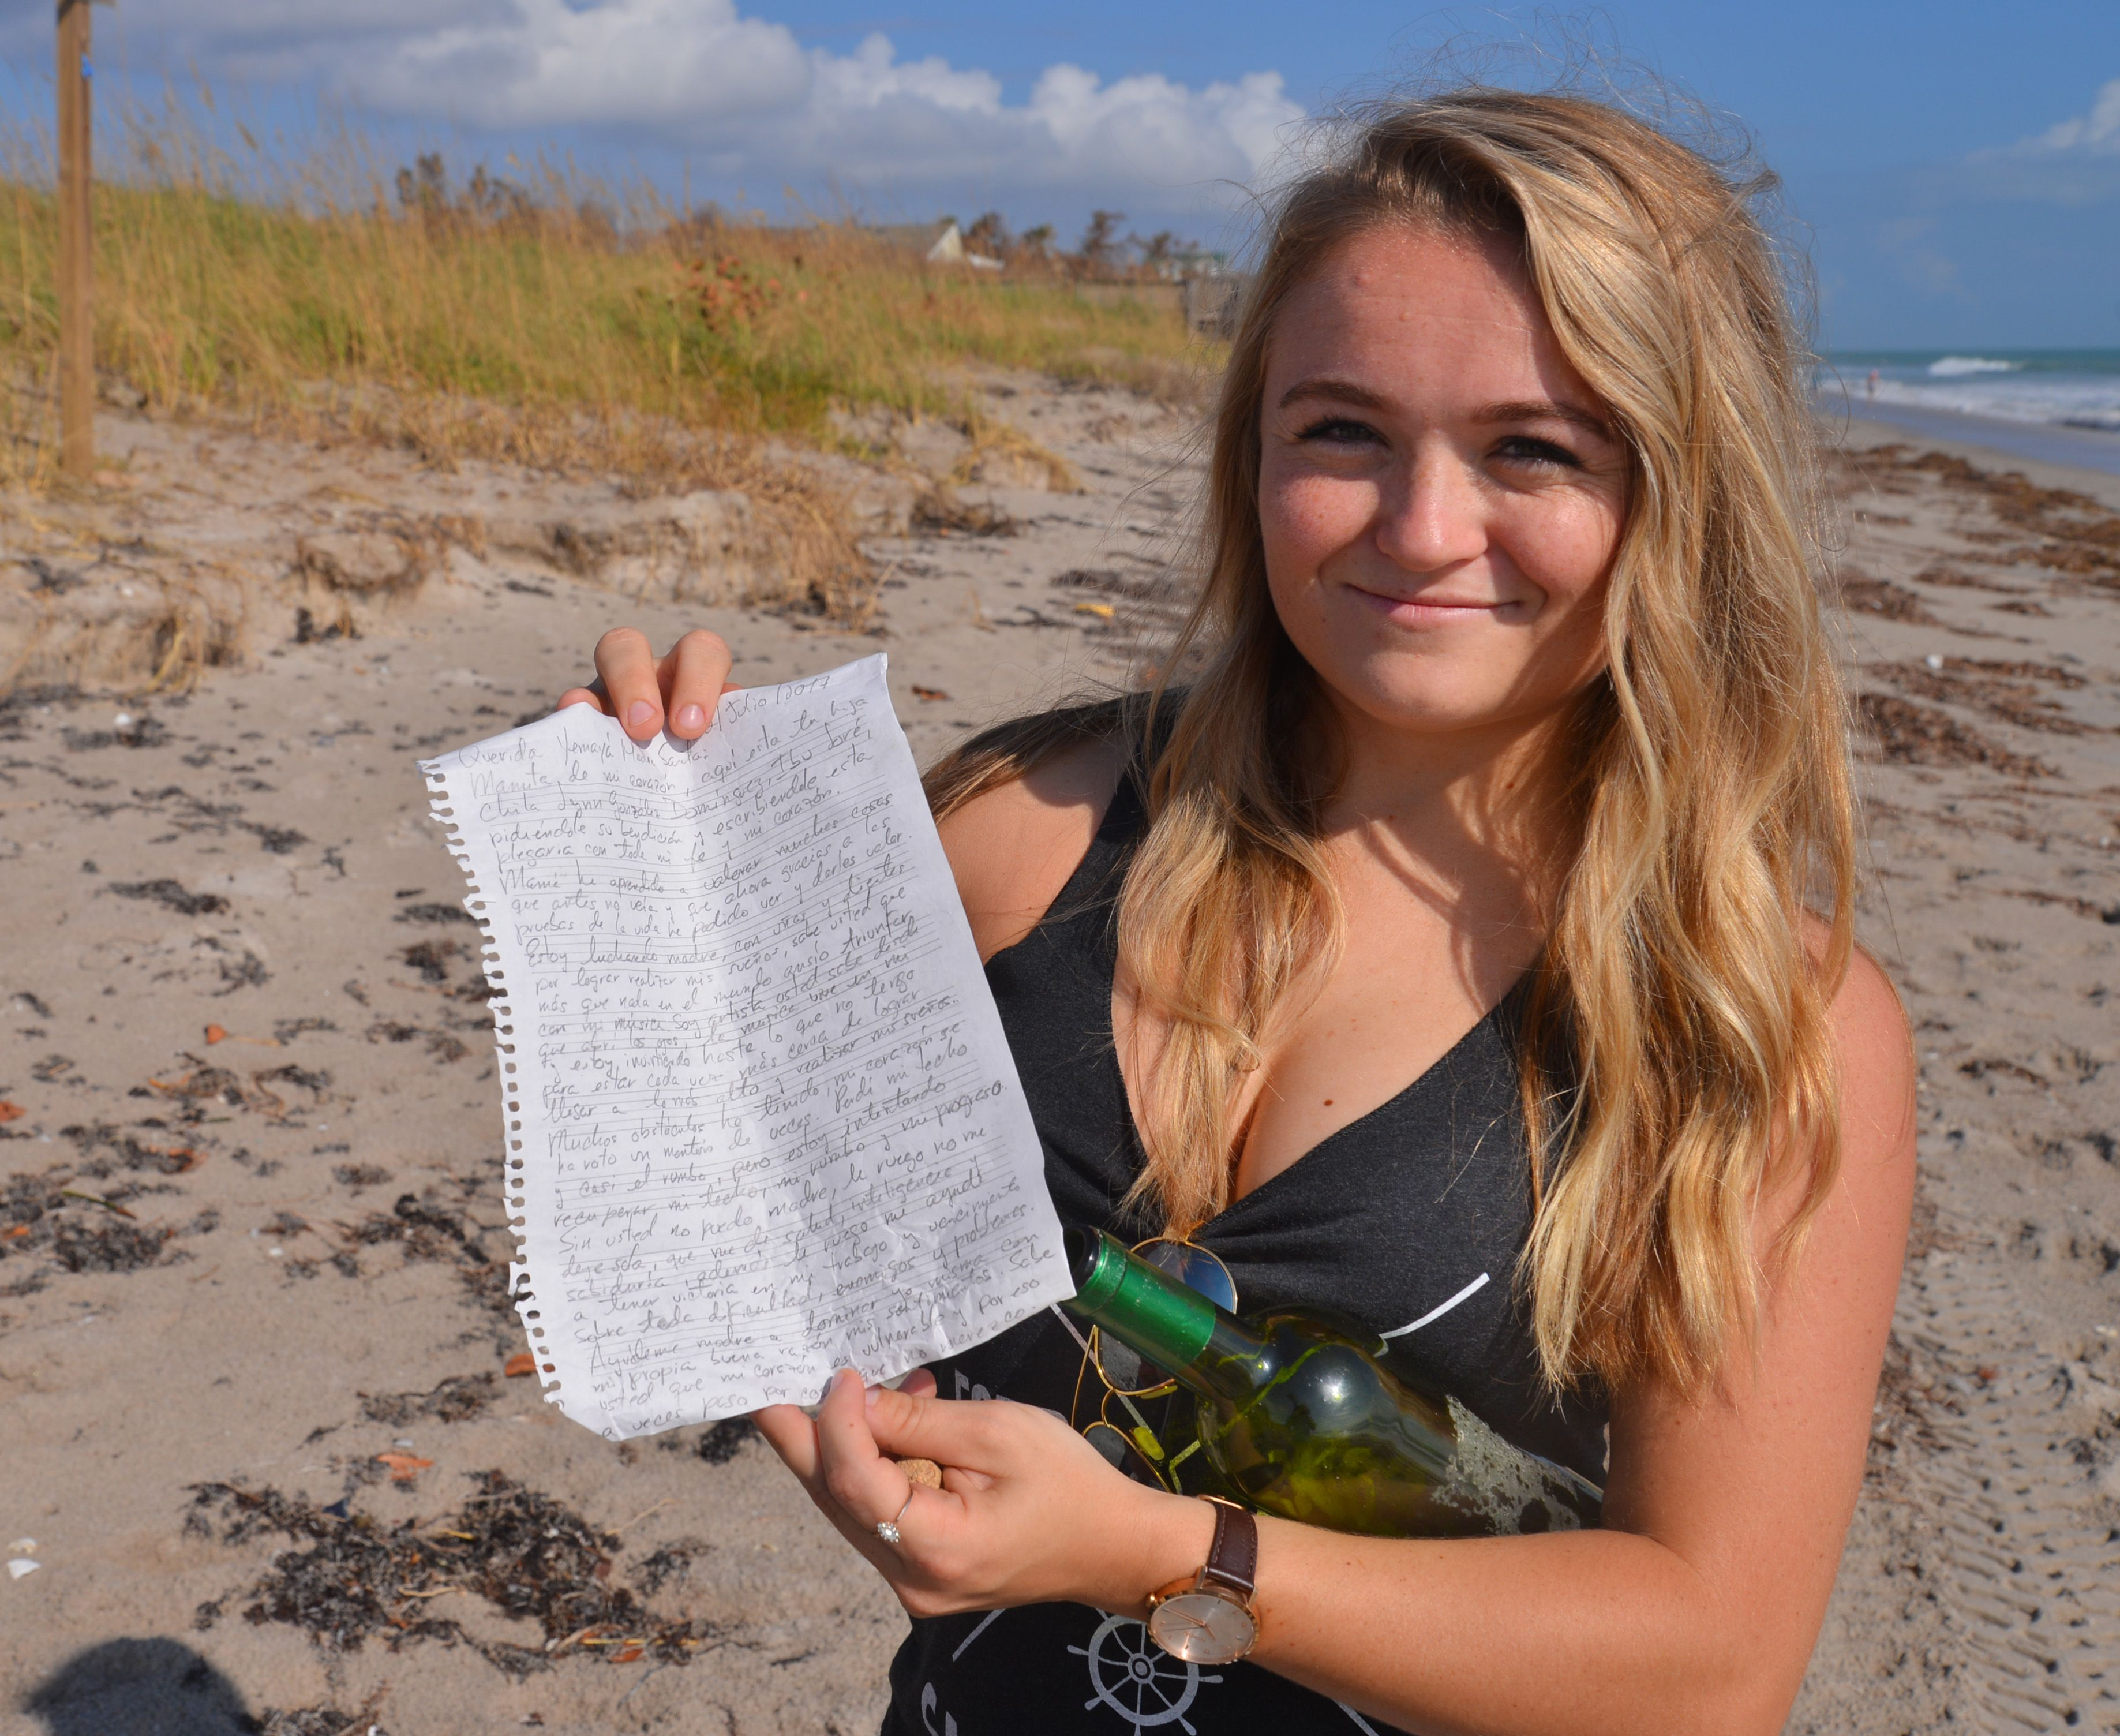 Nikki Snow reads message in bottle